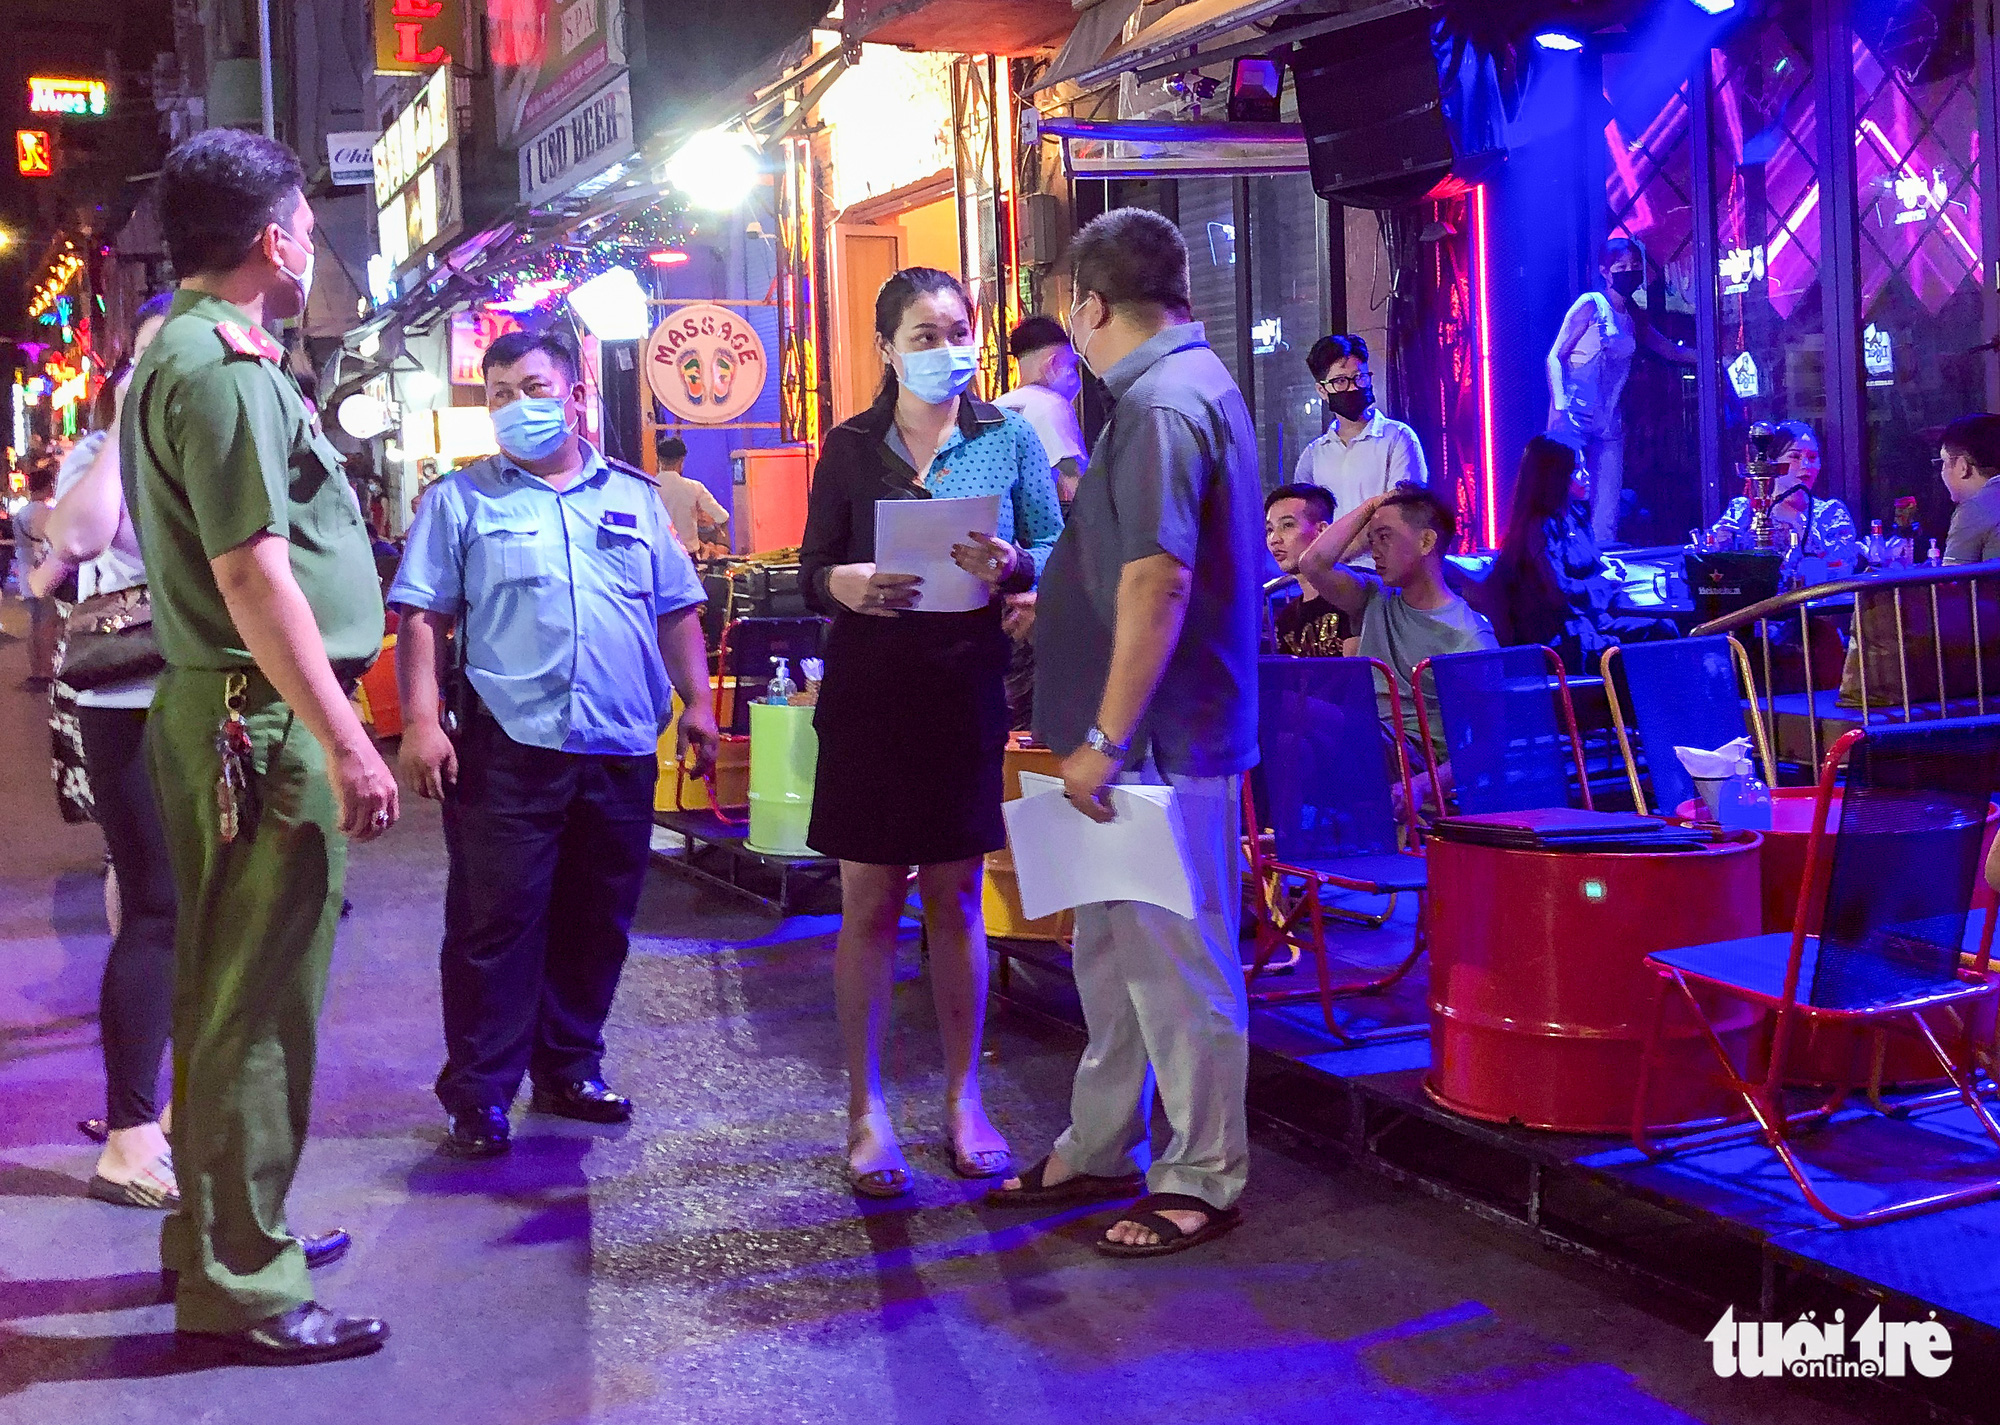 An official explains to a store owner the terms of a noise-reducing commitment during an inspection of businesses on Bui Vien Street in Ho Chi Minh City, Vietnam, March 20, 2021. Photo: Chau Tuan / Tuoi Tre